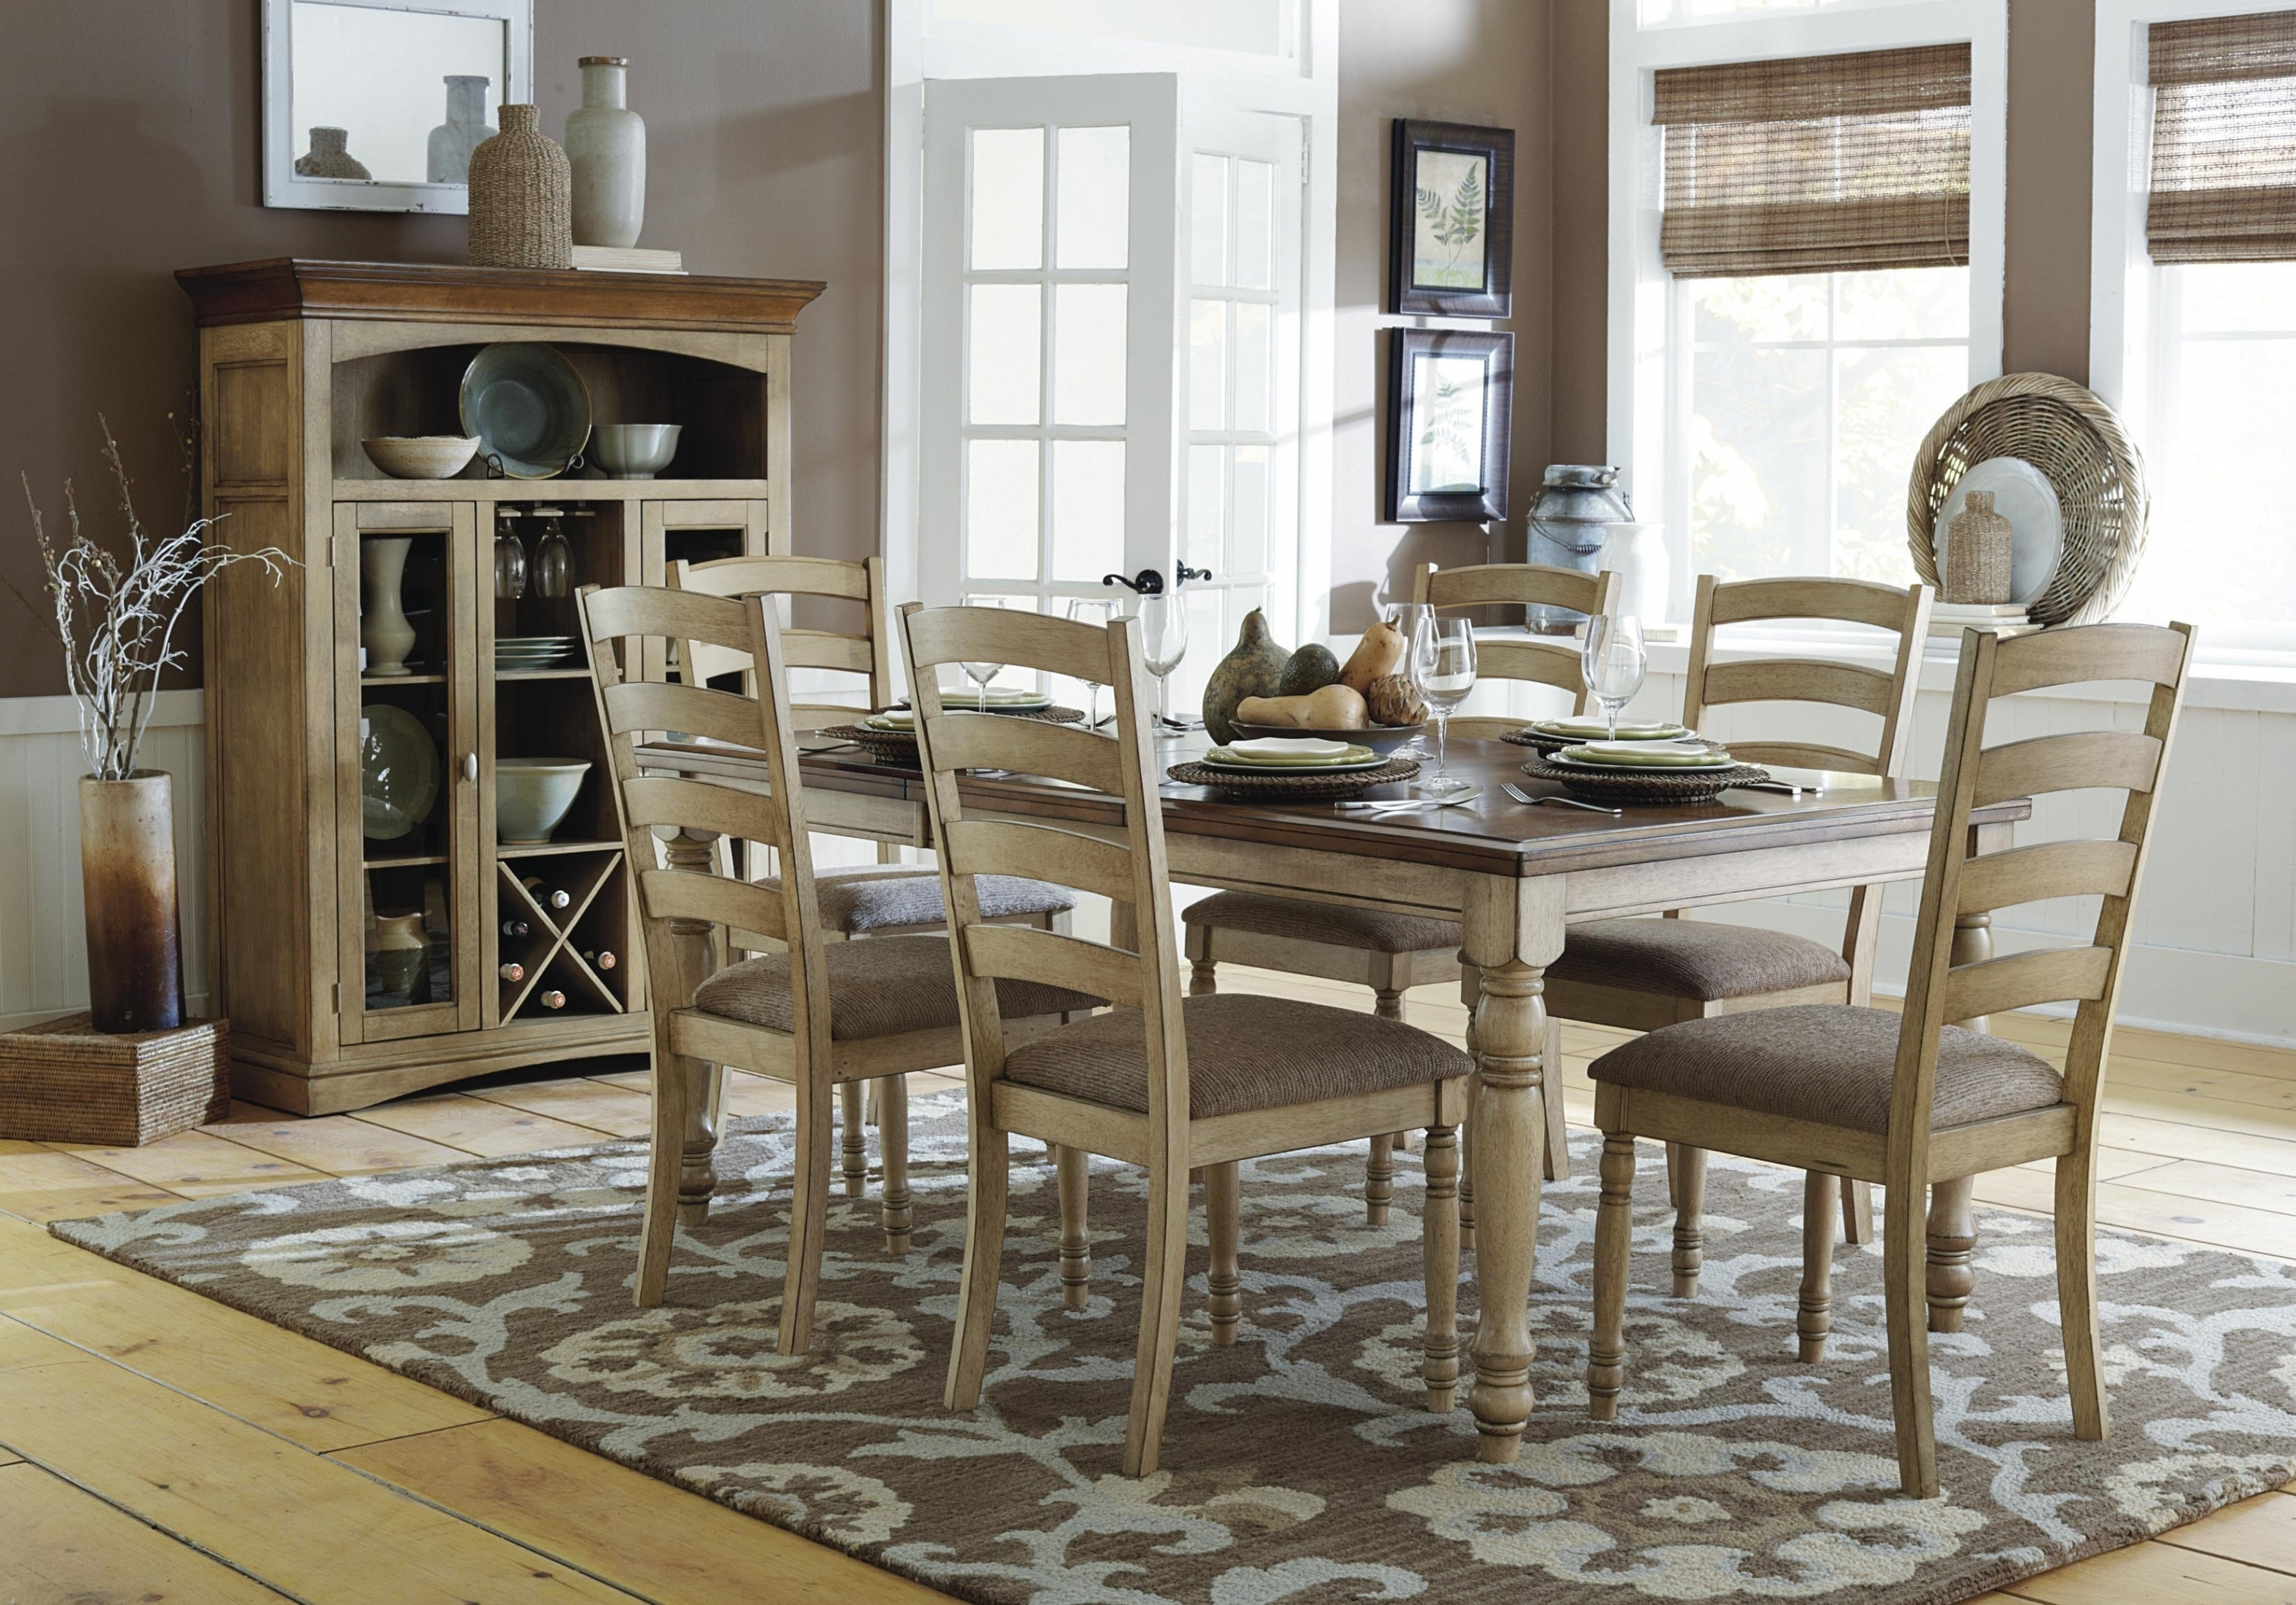 Emejing Country Style Dining Room Chairs Images Dining Side Chairs